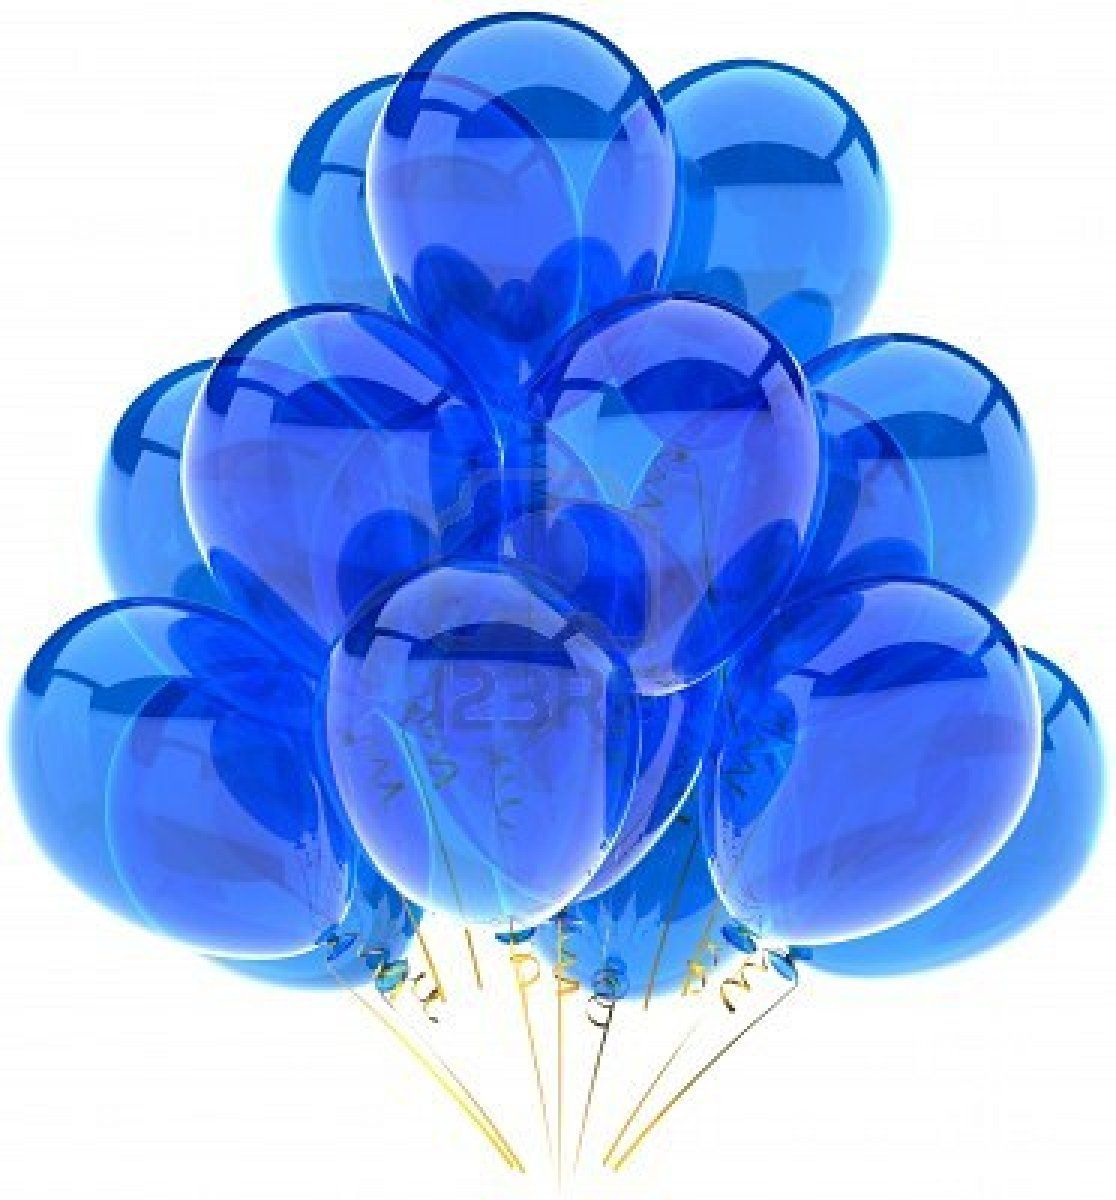 Green and blue balloons - Sheer Blue Balloons As A Kid I Always Chose The Blue Balloon